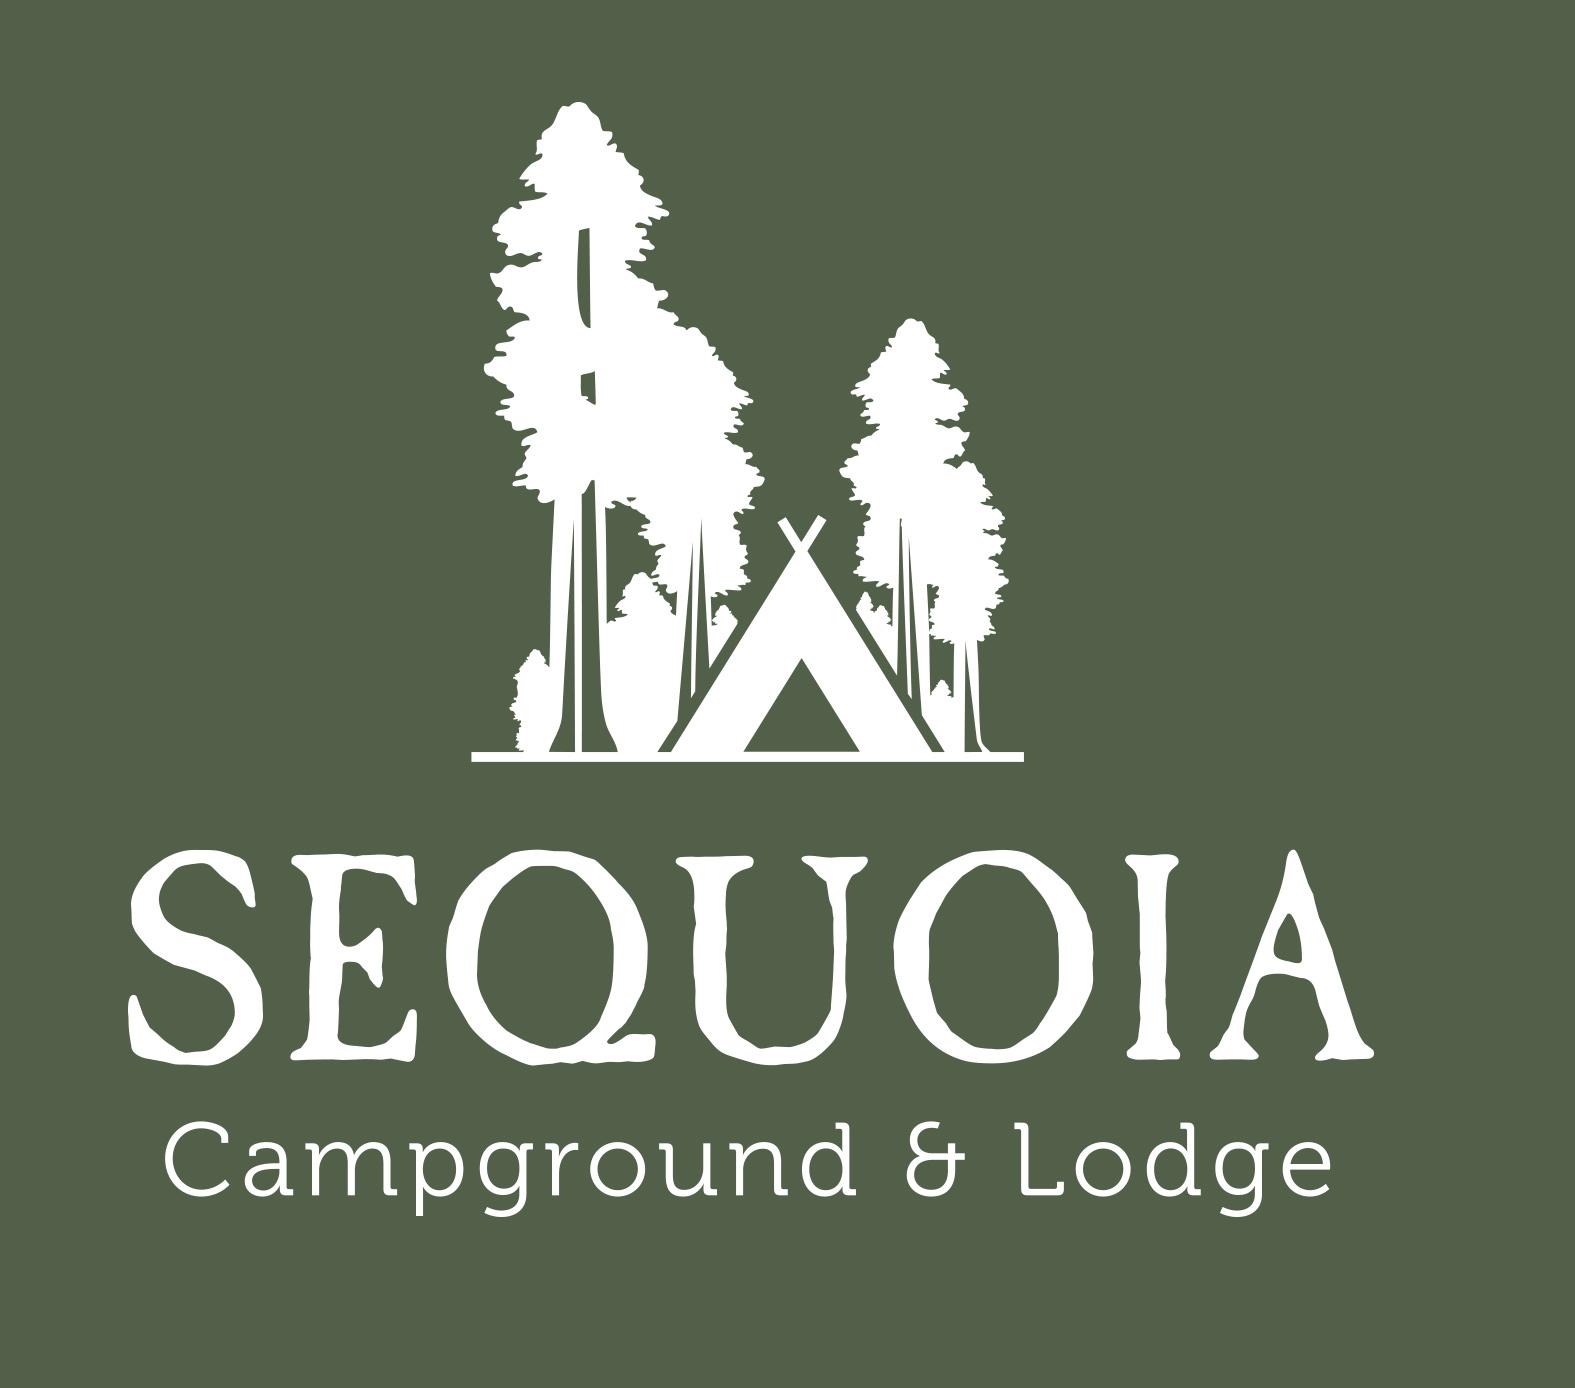 Sequoia Campground